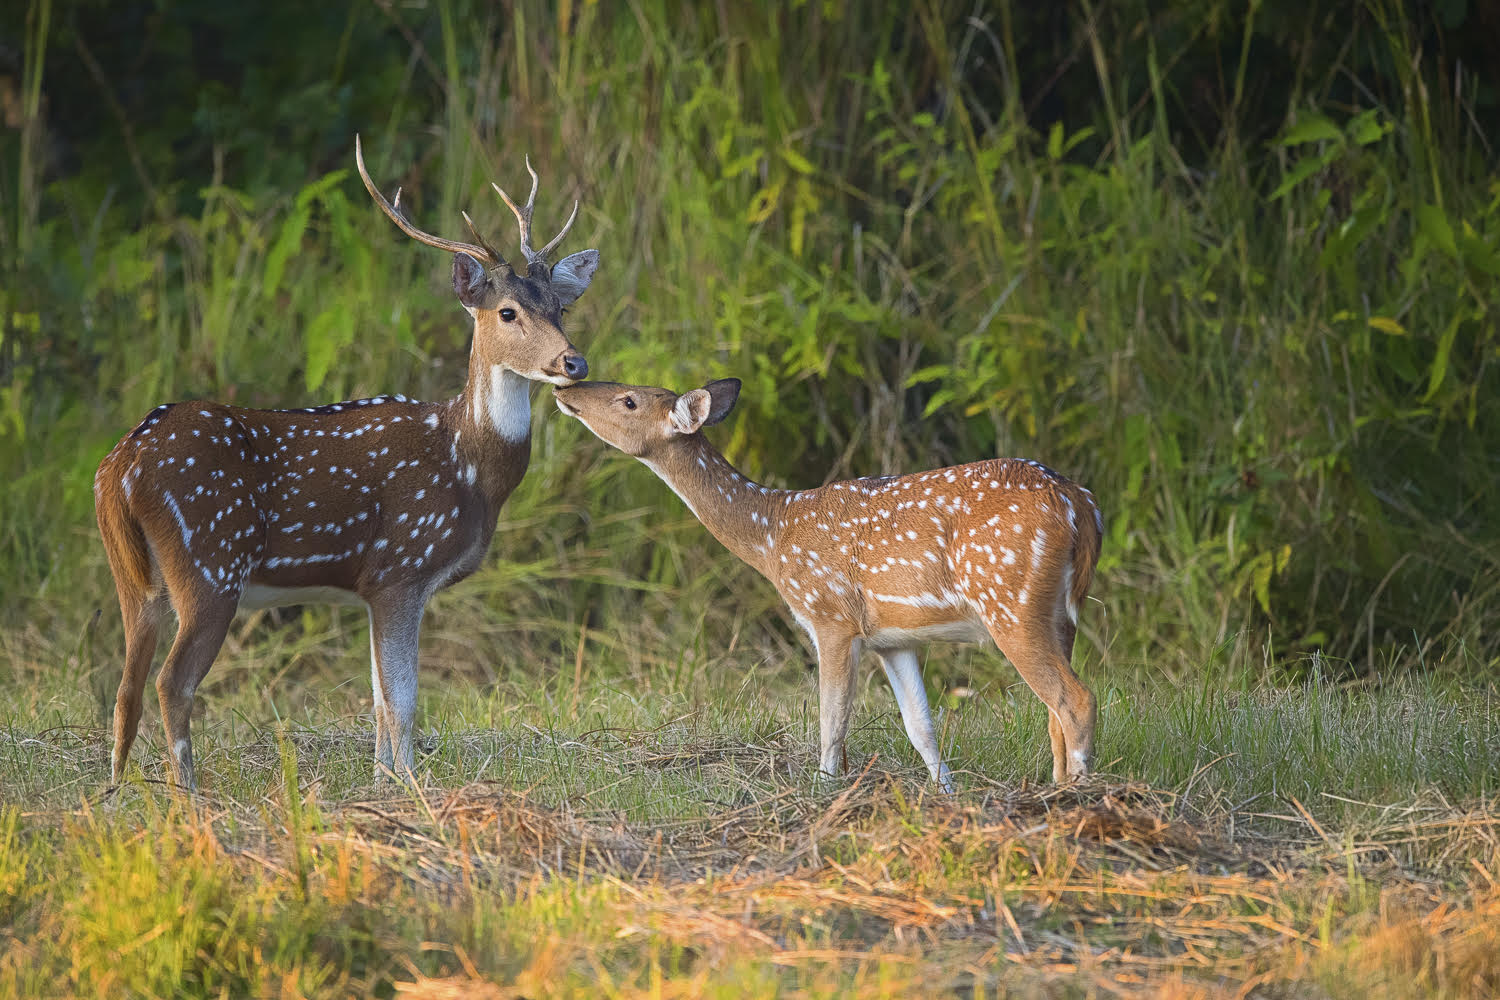 Spotted Deer - Courtesy of Fanny Lai and Bjorn Olesen